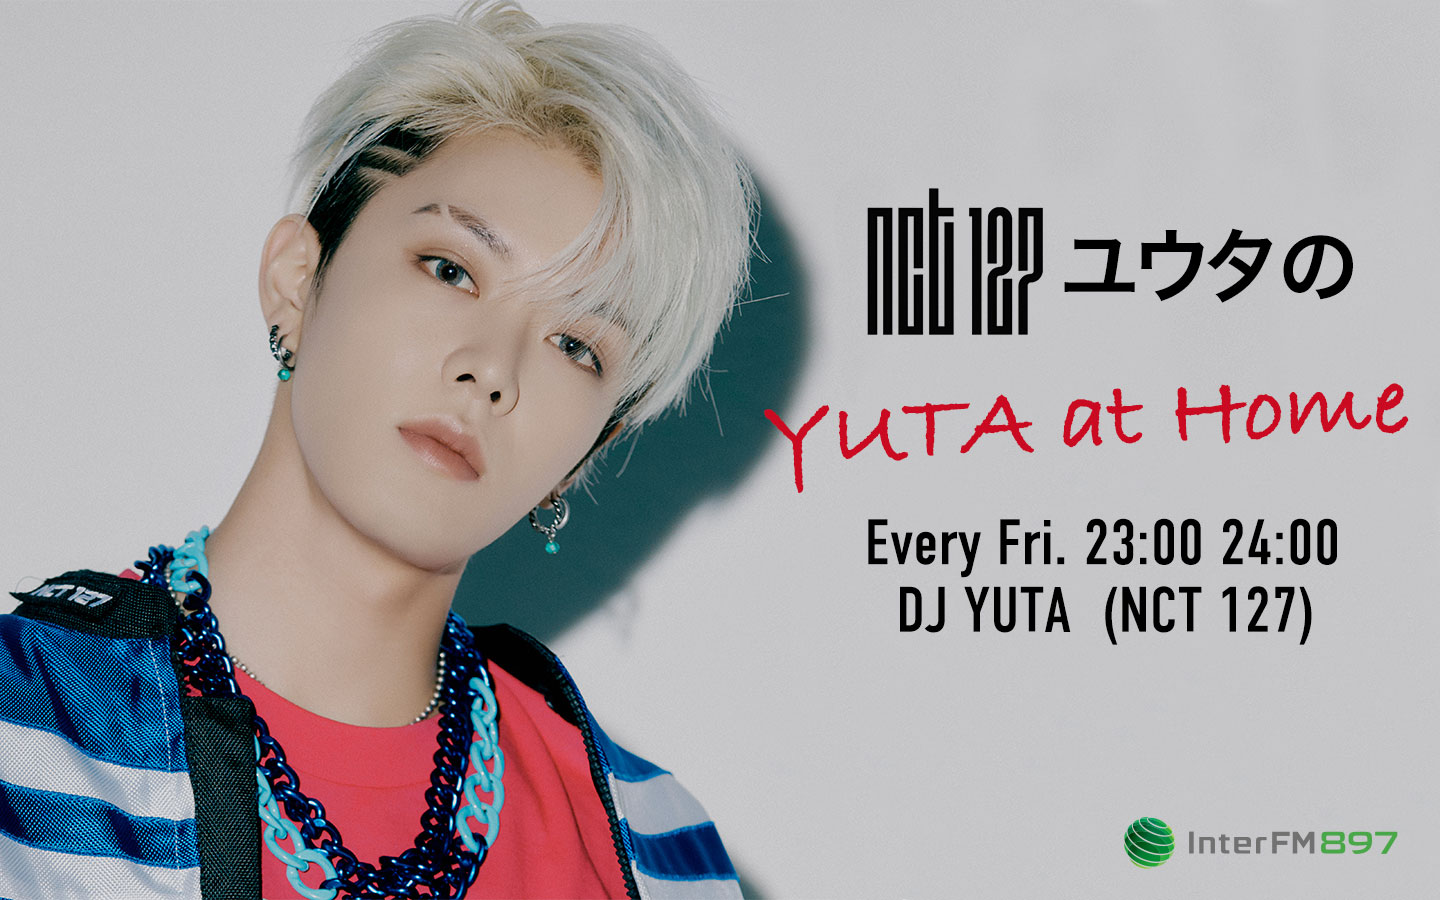 nct127 YUTA의 YUTA at Home